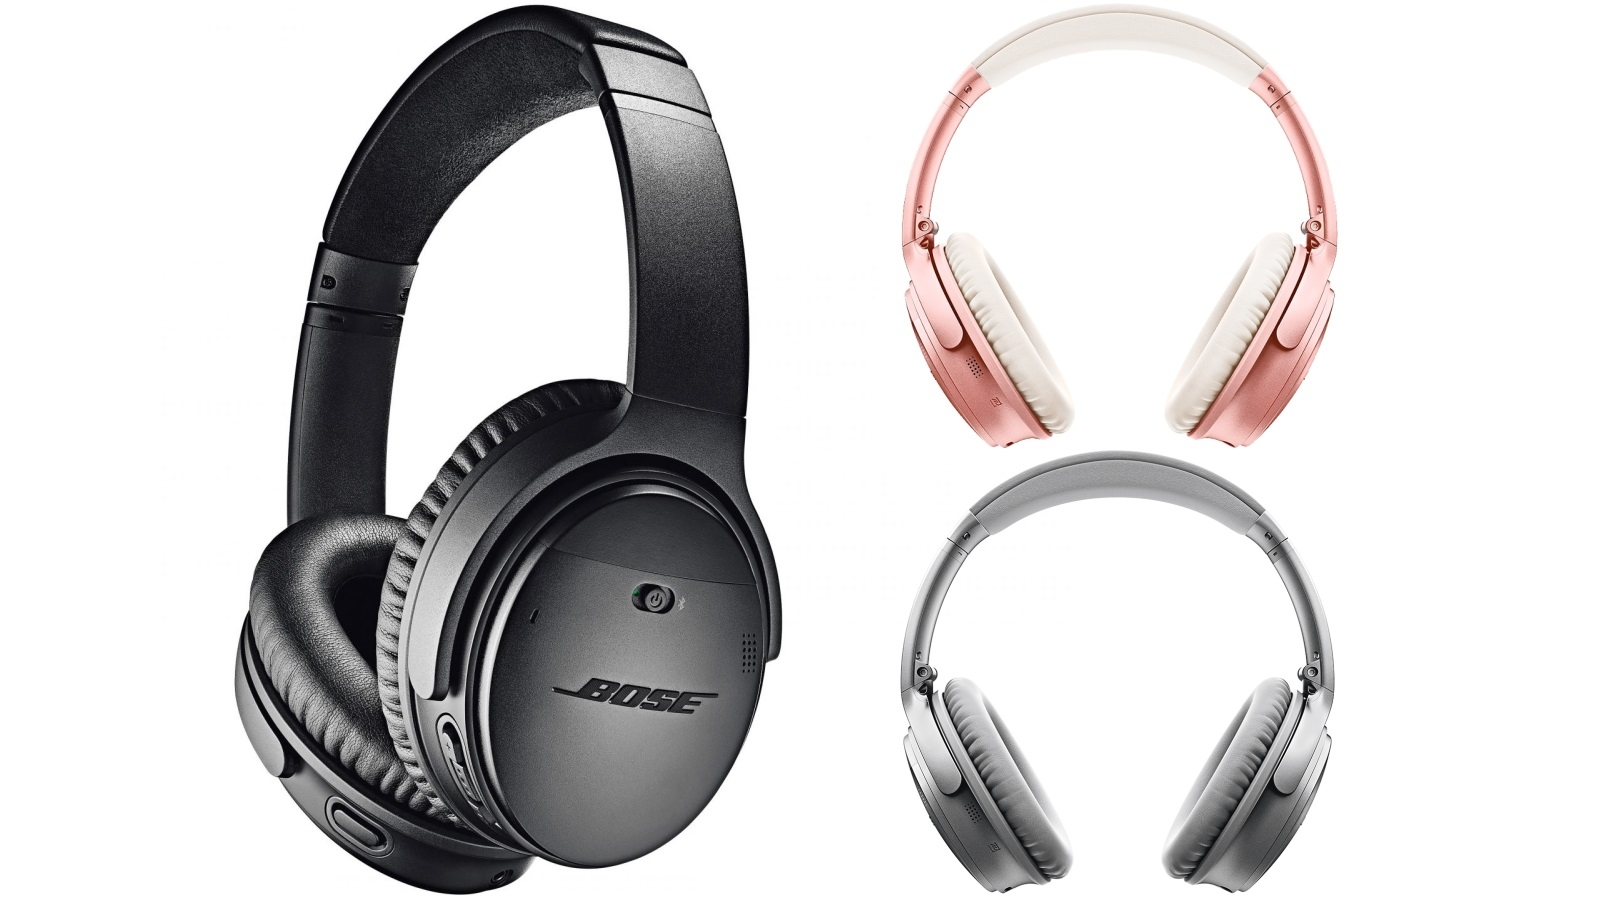 de5250433d5 Buy Bose QuietComfort 35 Series II Over-Ear Wireless Headphones | Harvey  Norman AU